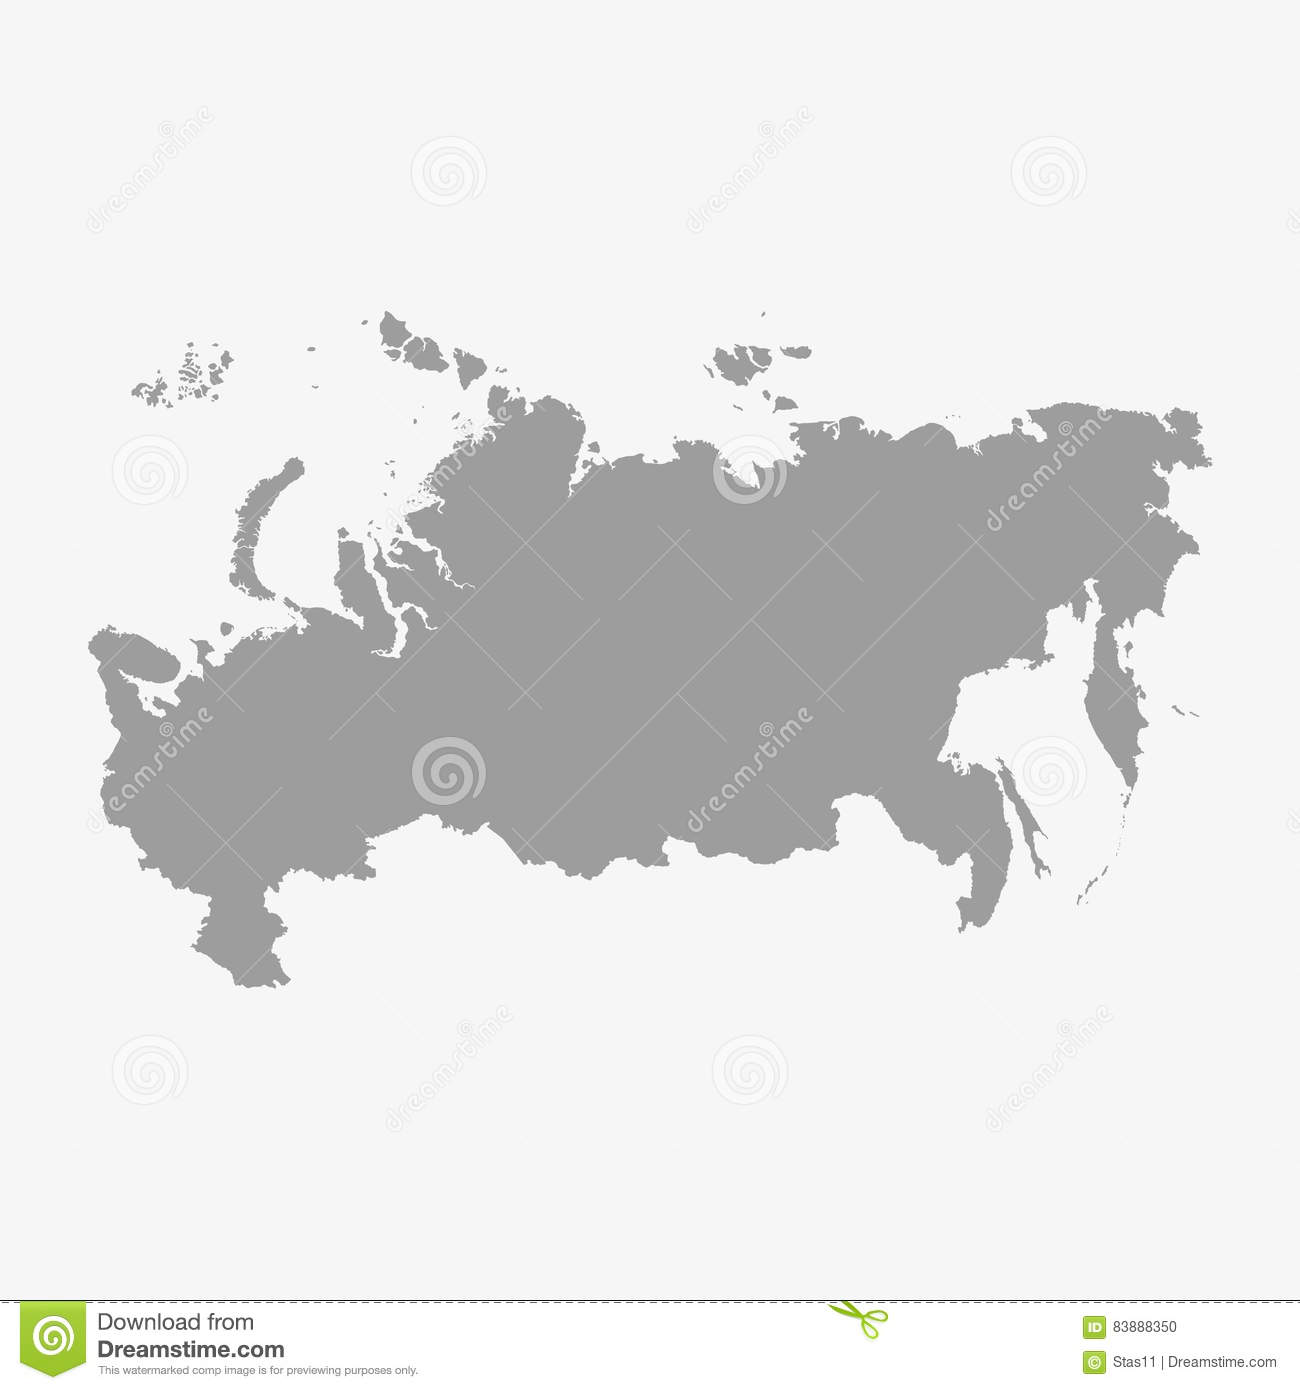 carte de la russie dans le gris sur un fond blanc illustration de vecteur illustration du. Black Bedroom Furniture Sets. Home Design Ideas